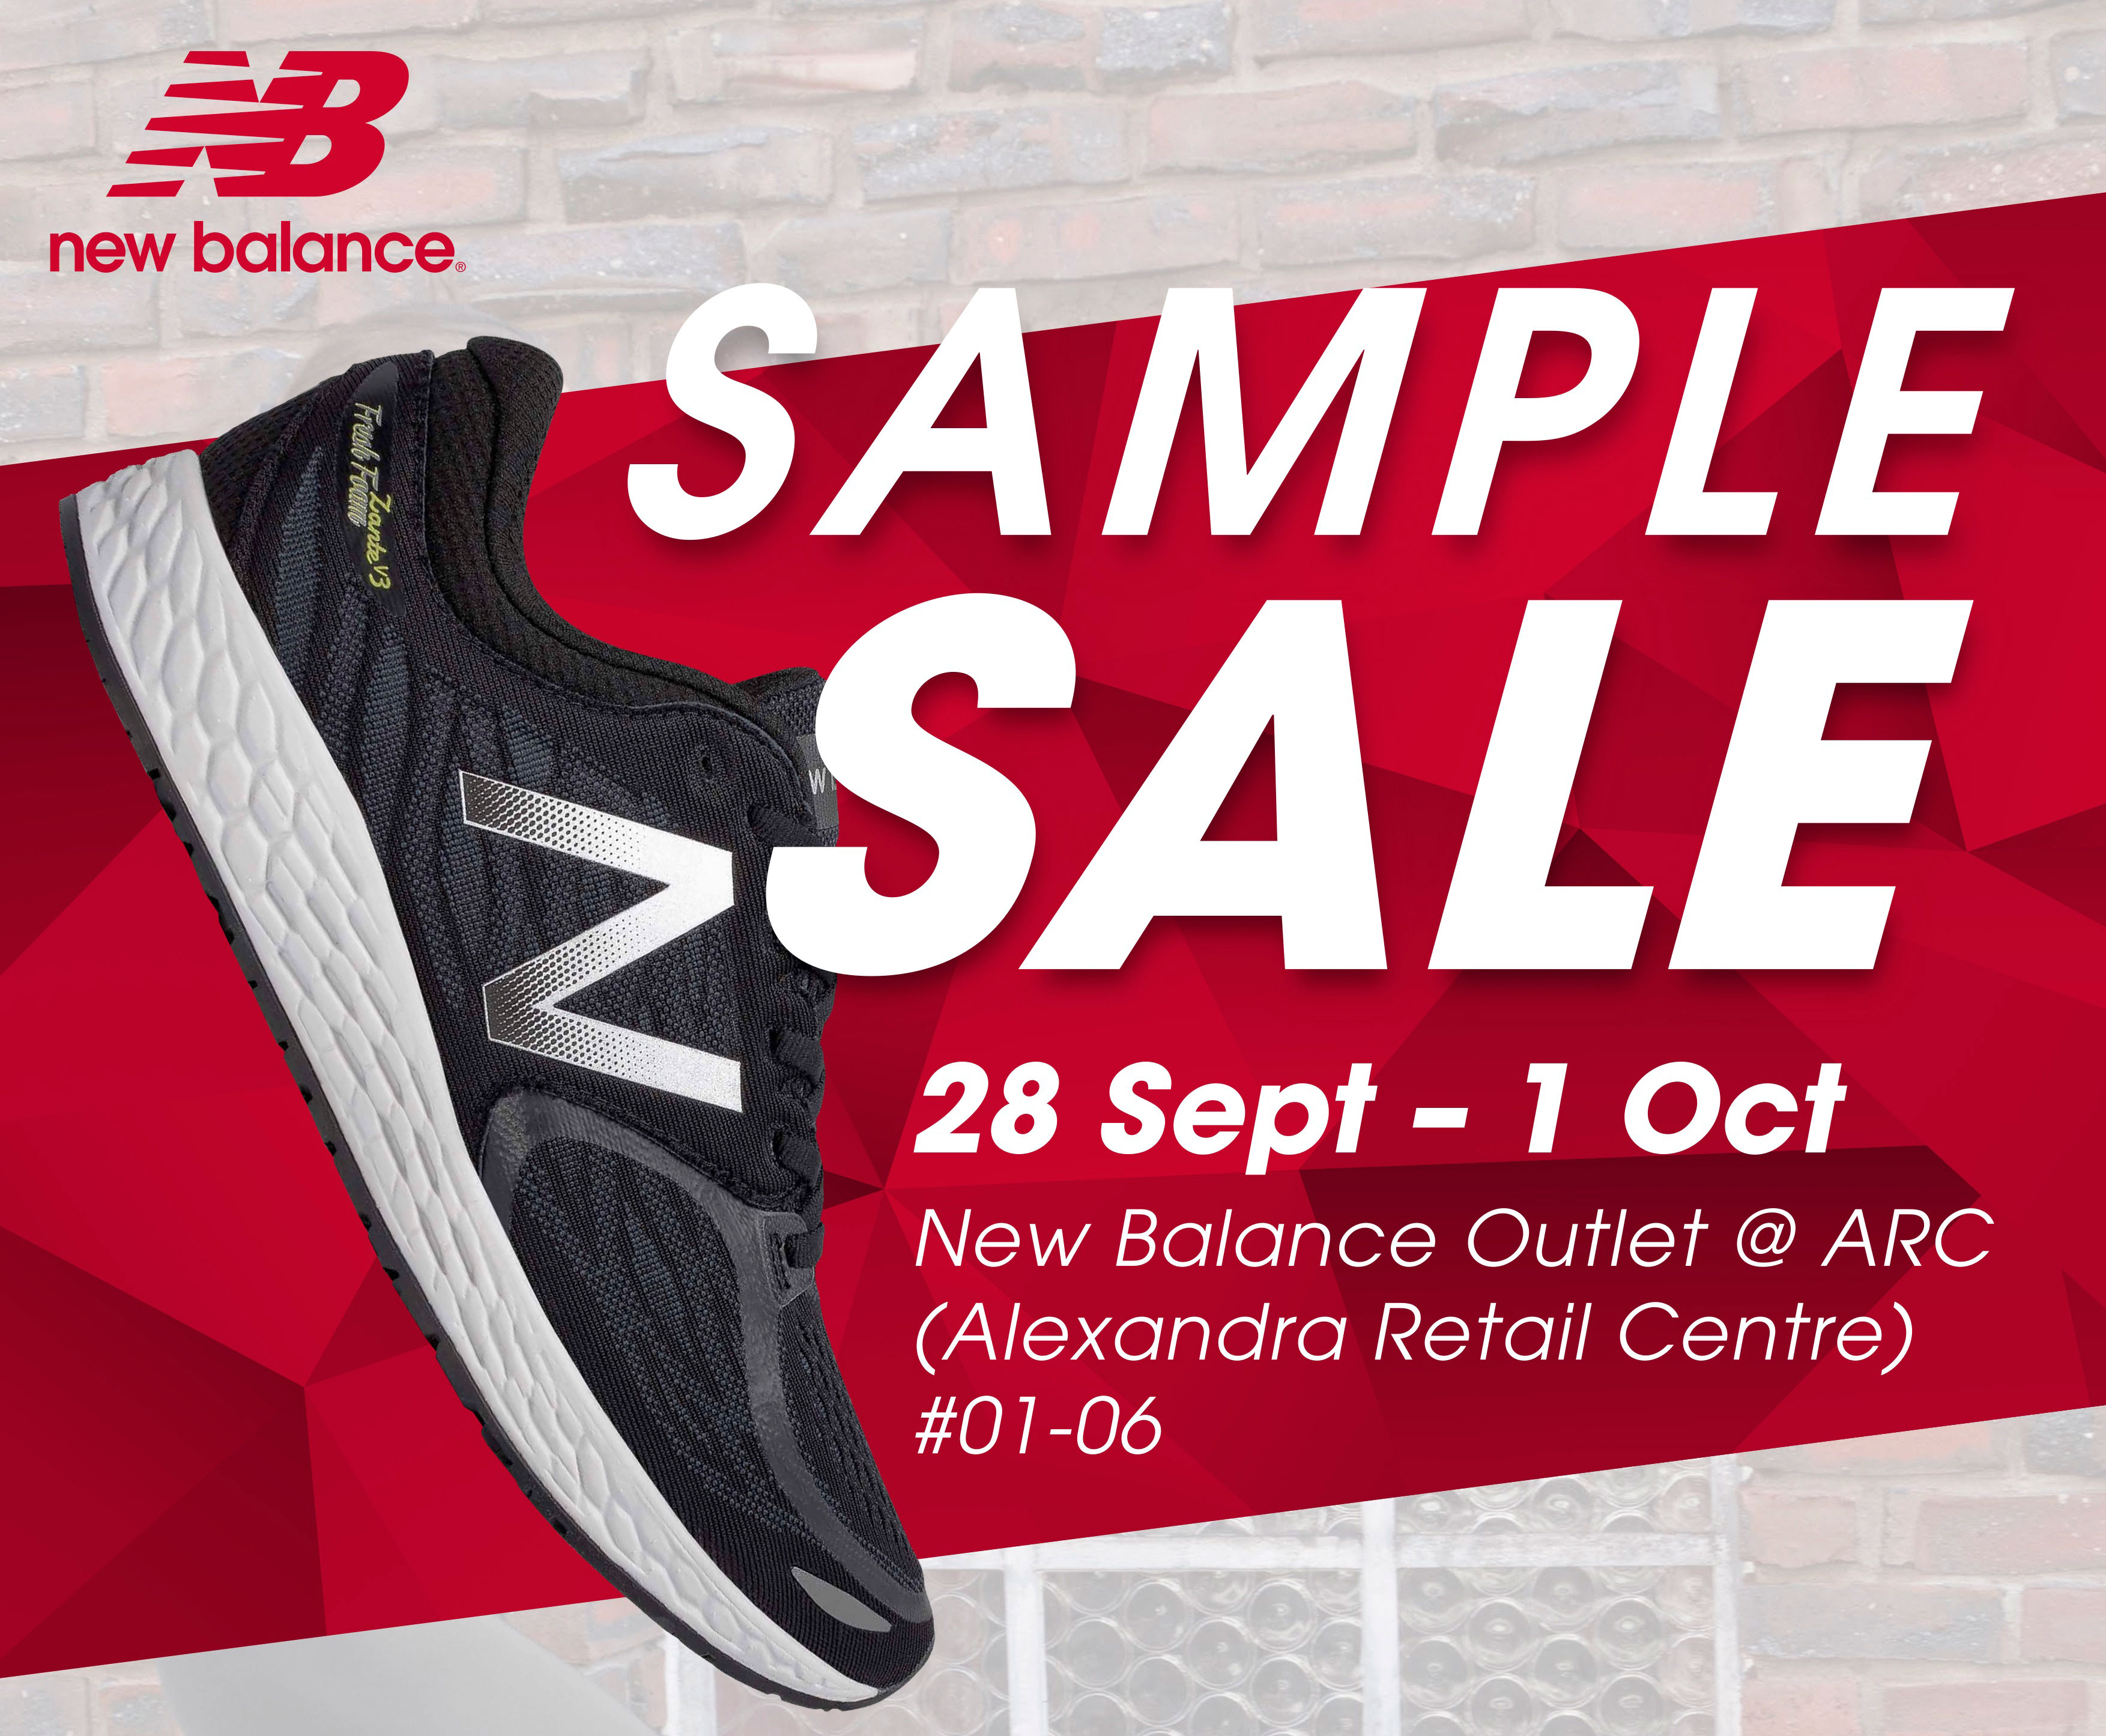 New Balance Sample Sale @ ARC: $50 Footwear & Apparels from $12.50 (28 Sept – 1 Oct)